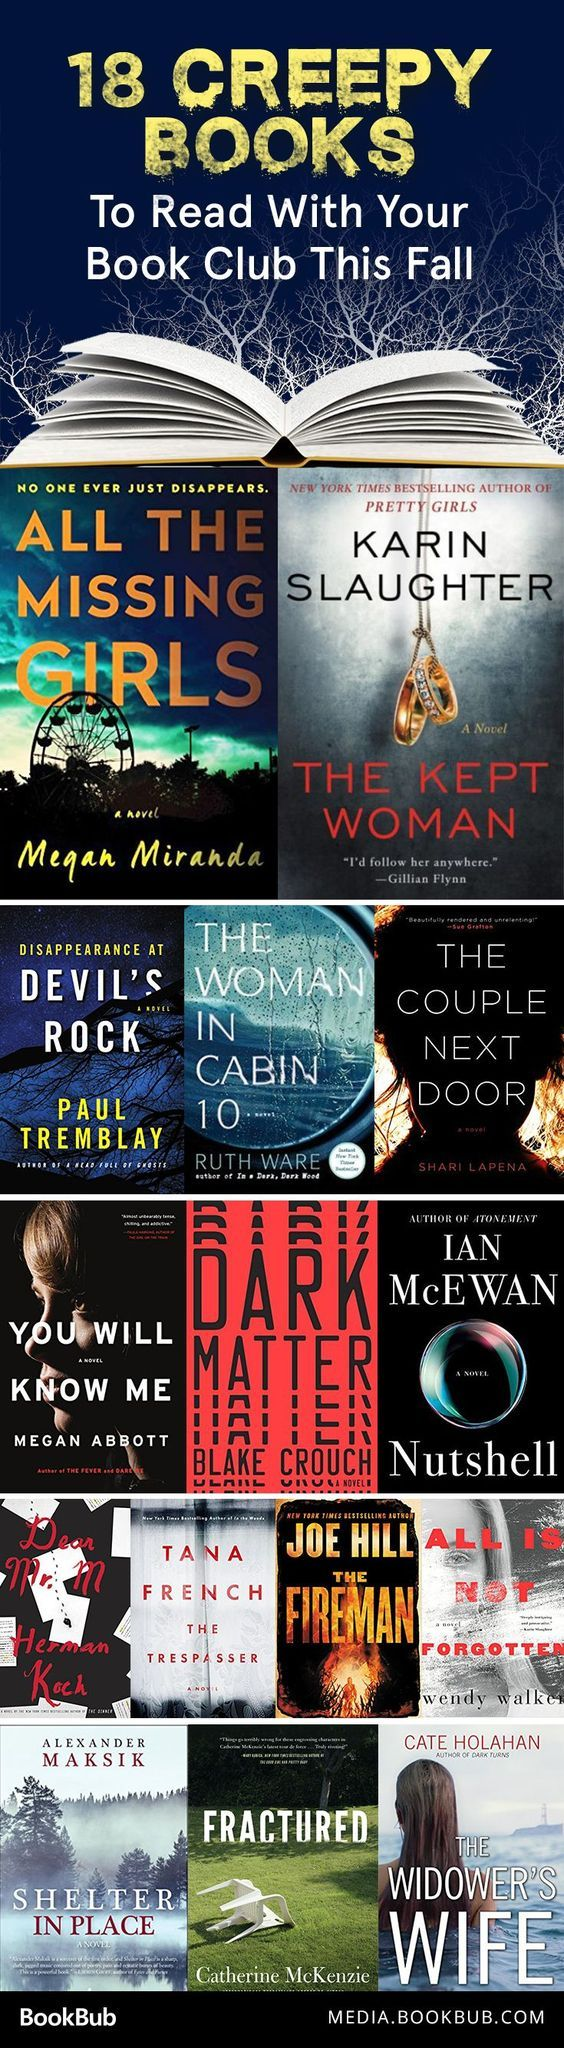 15 Creepy Books To Read With Your Book Club This Fall